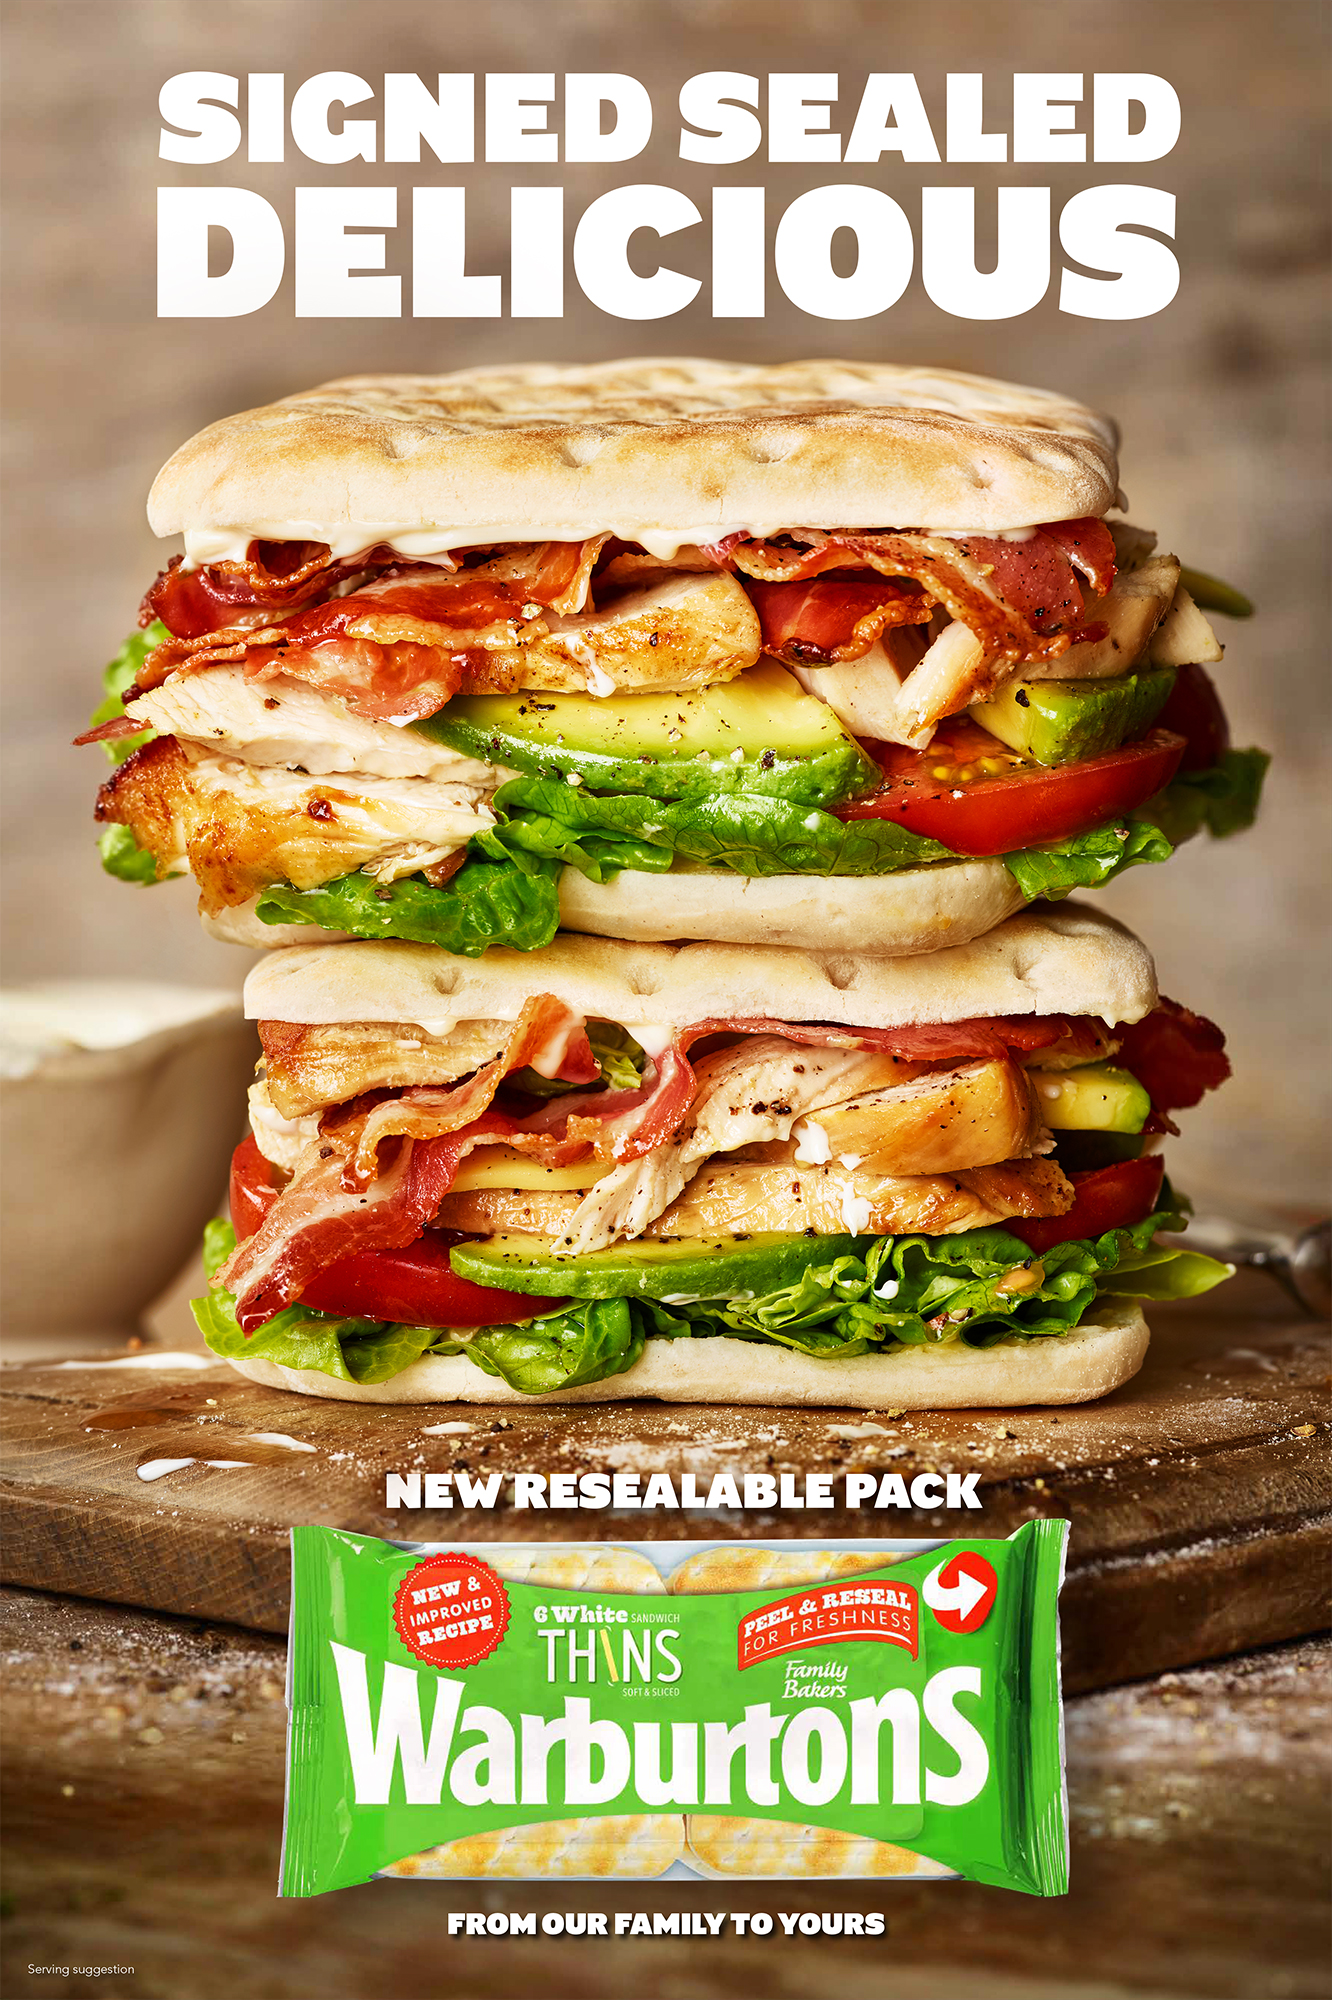 food photographer photography london uk drinks meals lunch dinner brunch breakfast advertising editorial gherkinspickles sandwich sarnie bread baked mayonnaise lettuce warburtons thins chicken bacon avocado tomato